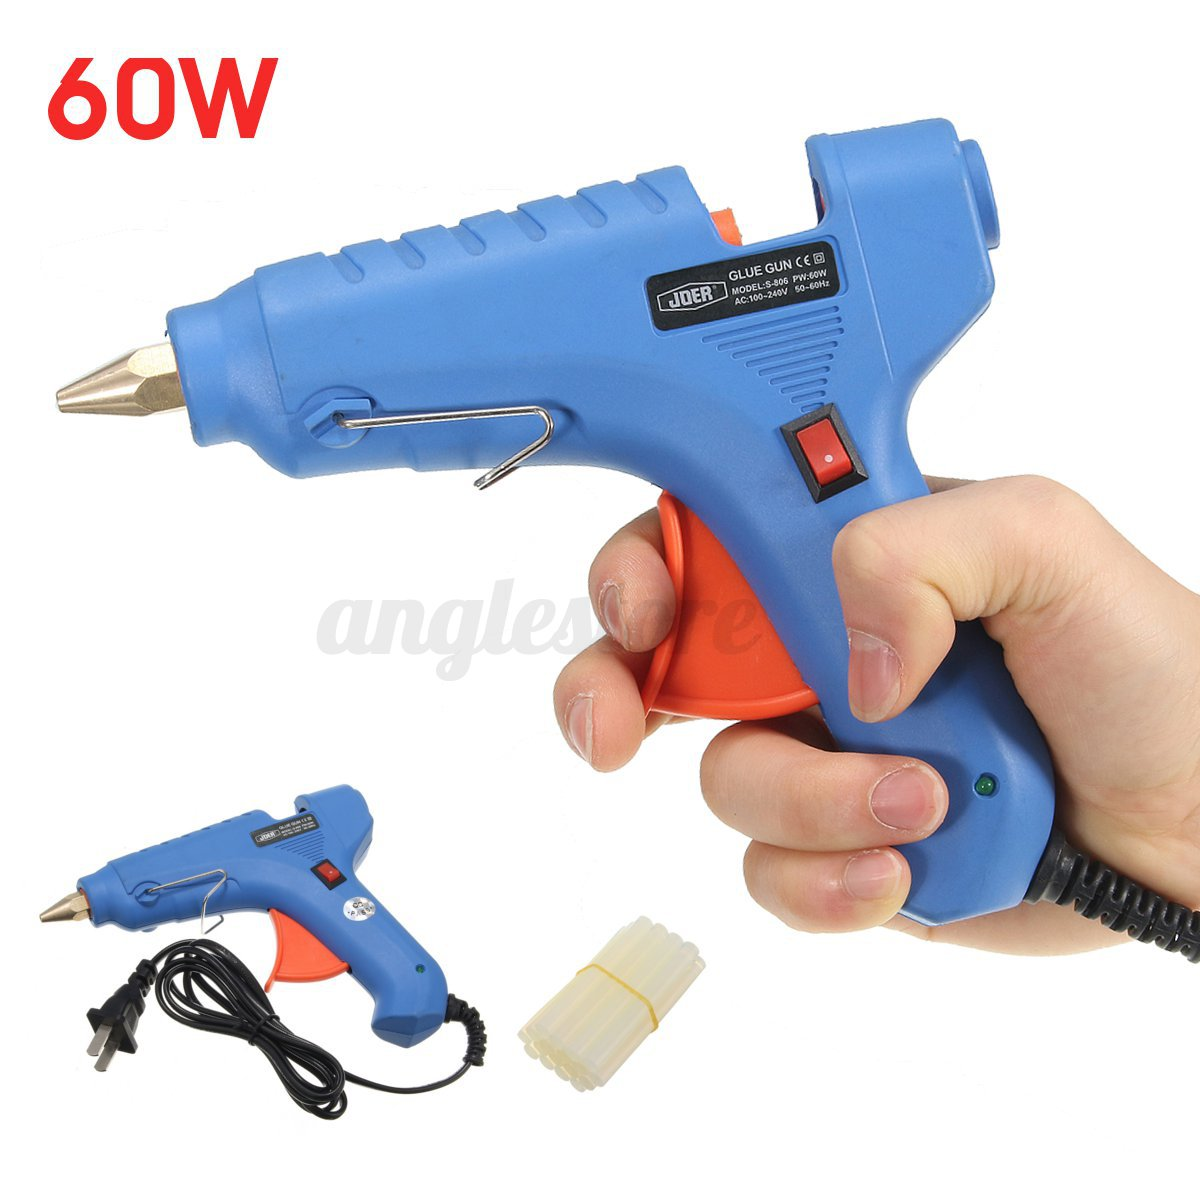 60w professional electric heating hot melt glue gun craft for Hot glue guns for crafts